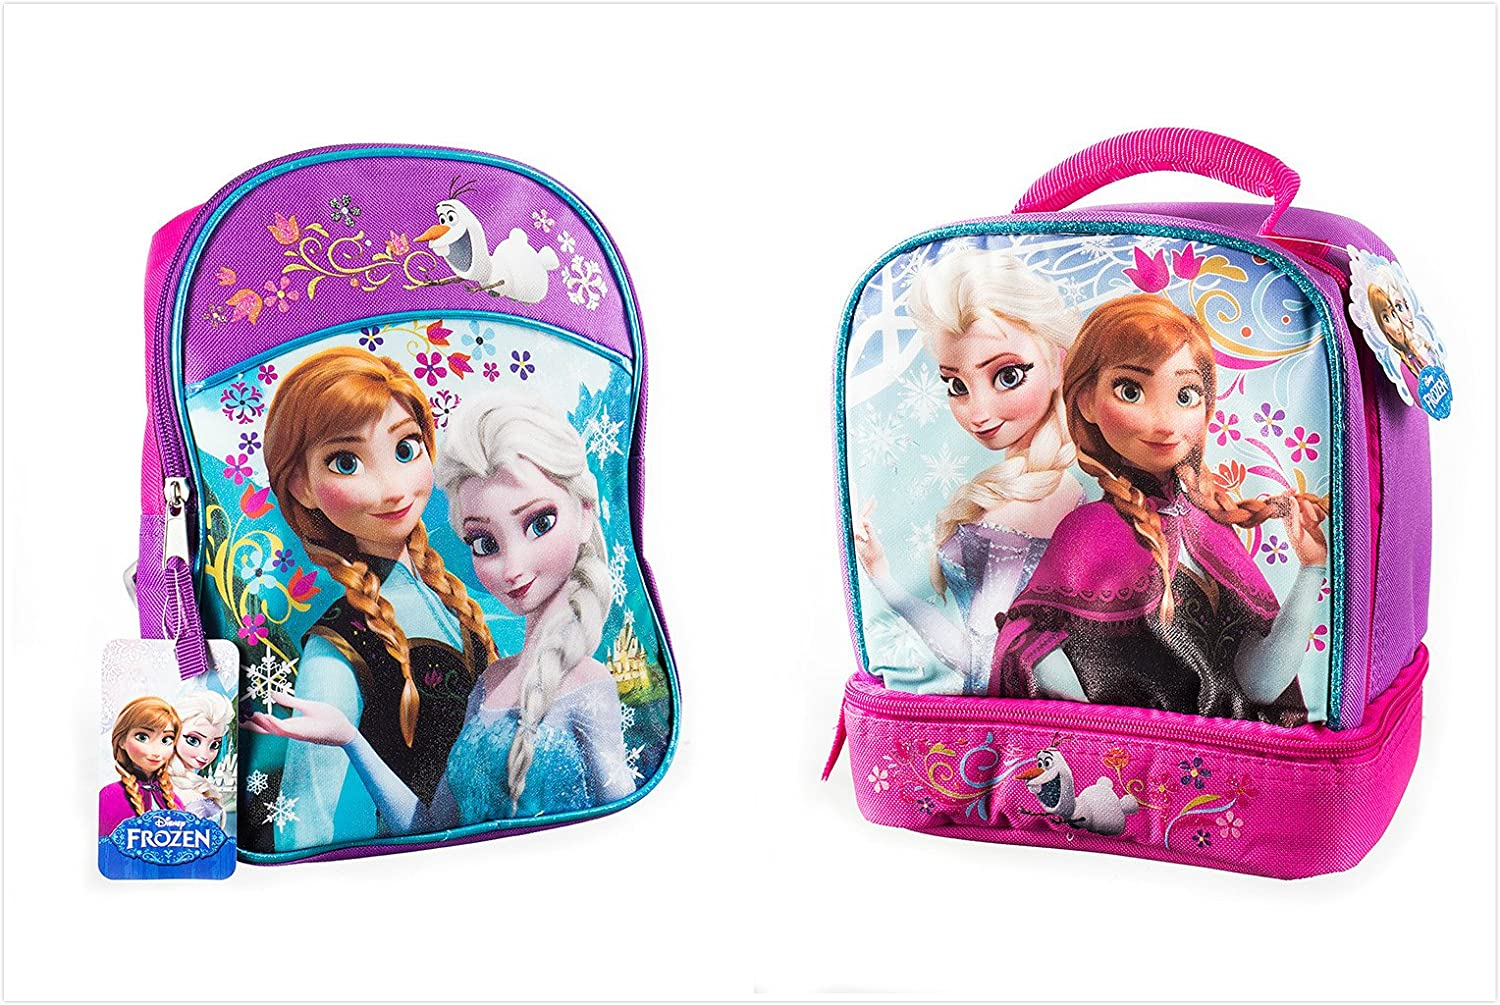 f80d28462f7 Amazon.com  Disney Frozen Backpack Princess Elsa   Anna 16   with a Lunch  Bag 9.5   Set  Toys   Games